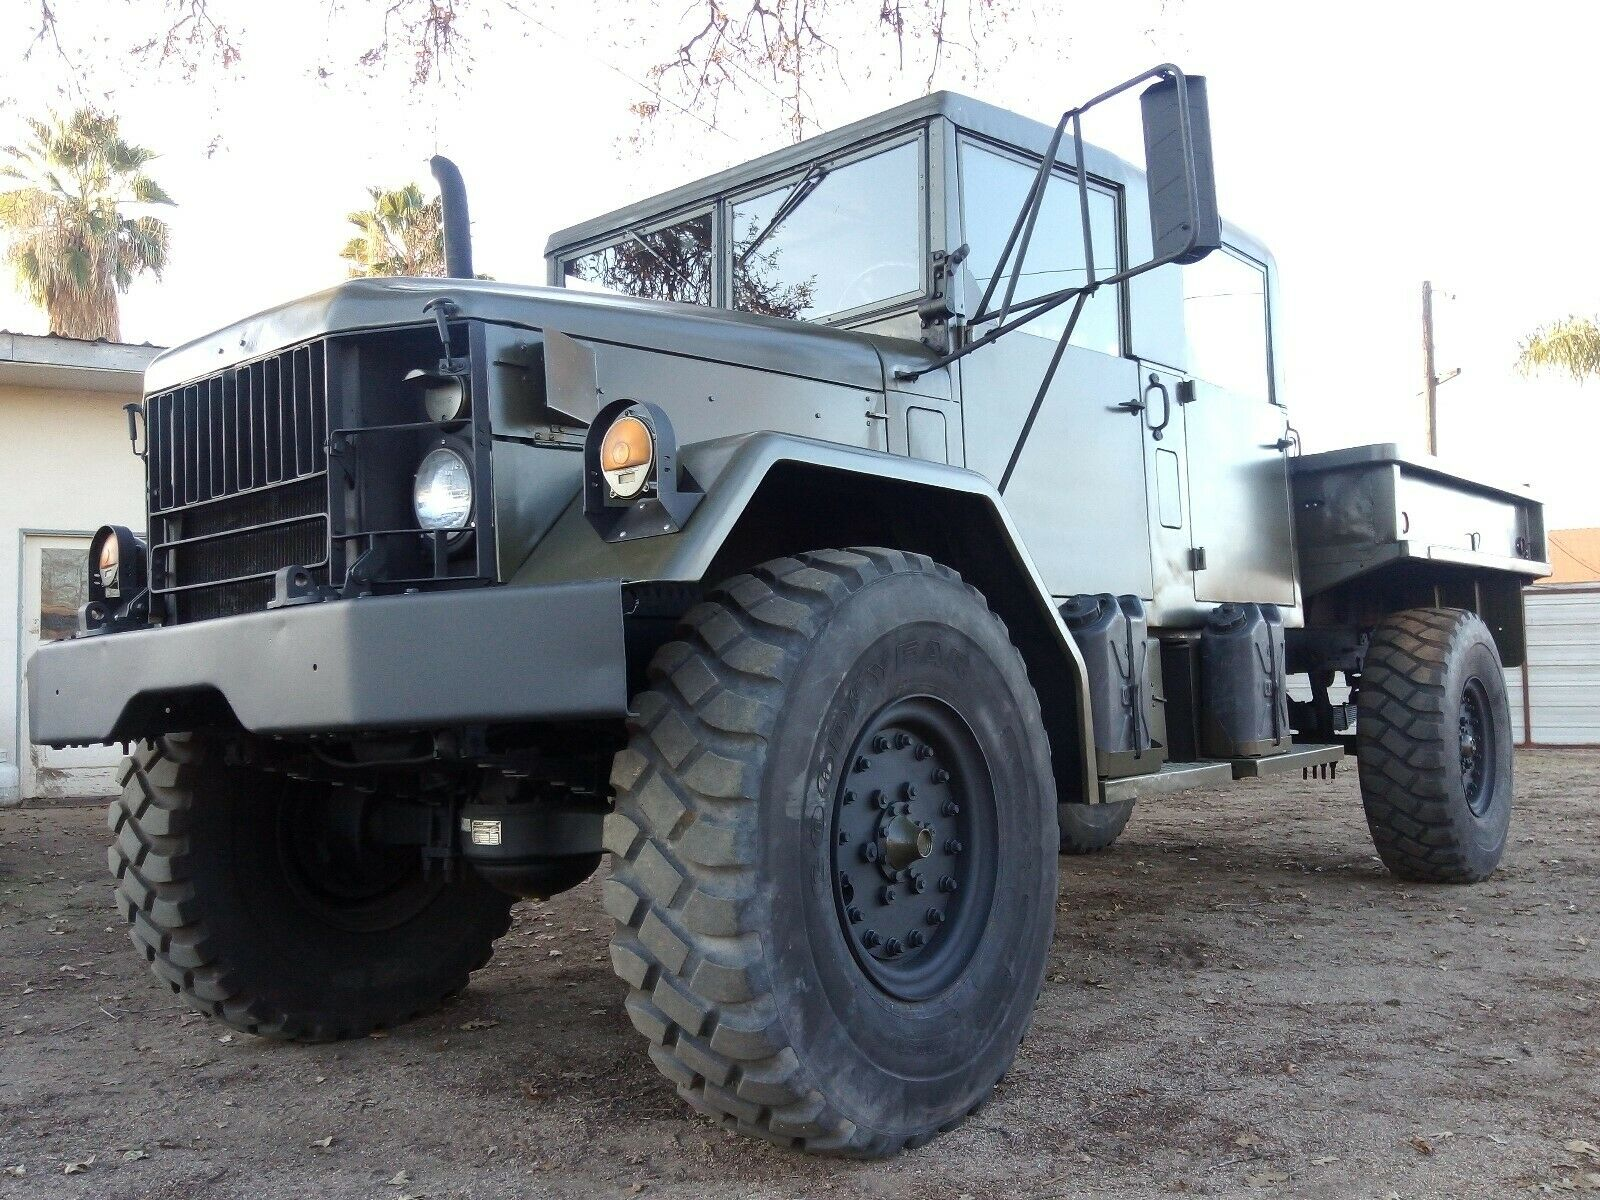 restored 1967 Jeep Kaiser M35a2 Deuce and a Half military for sale